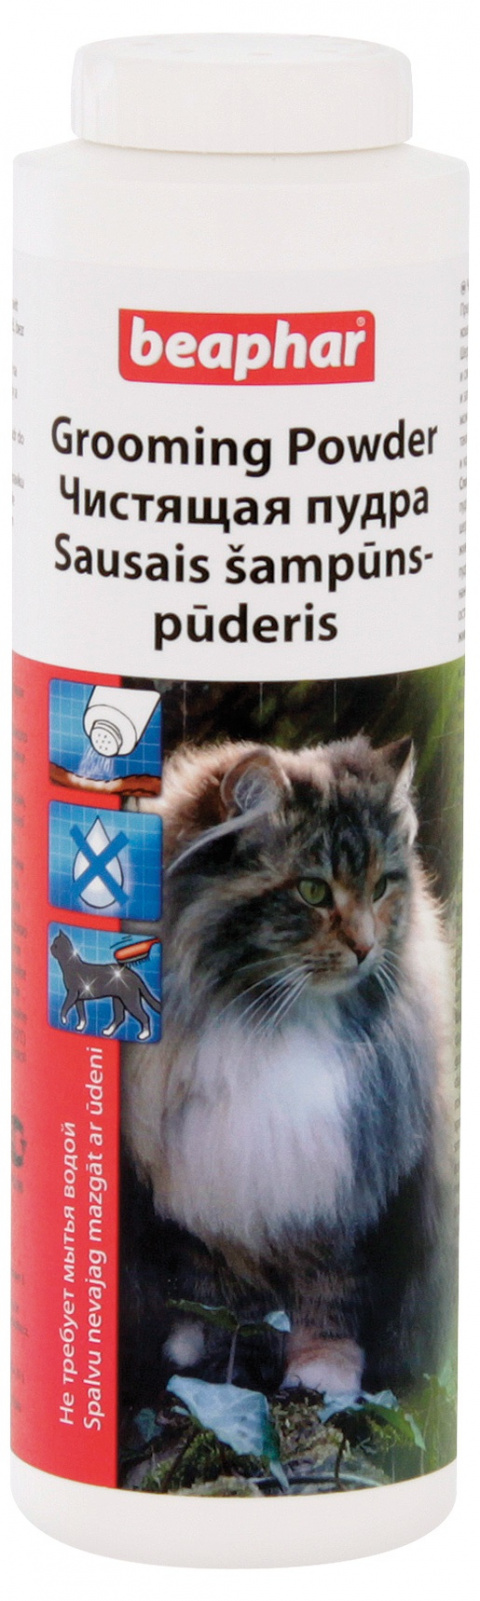 Puder BeaGrooming 150g-suchy samp.macky title=